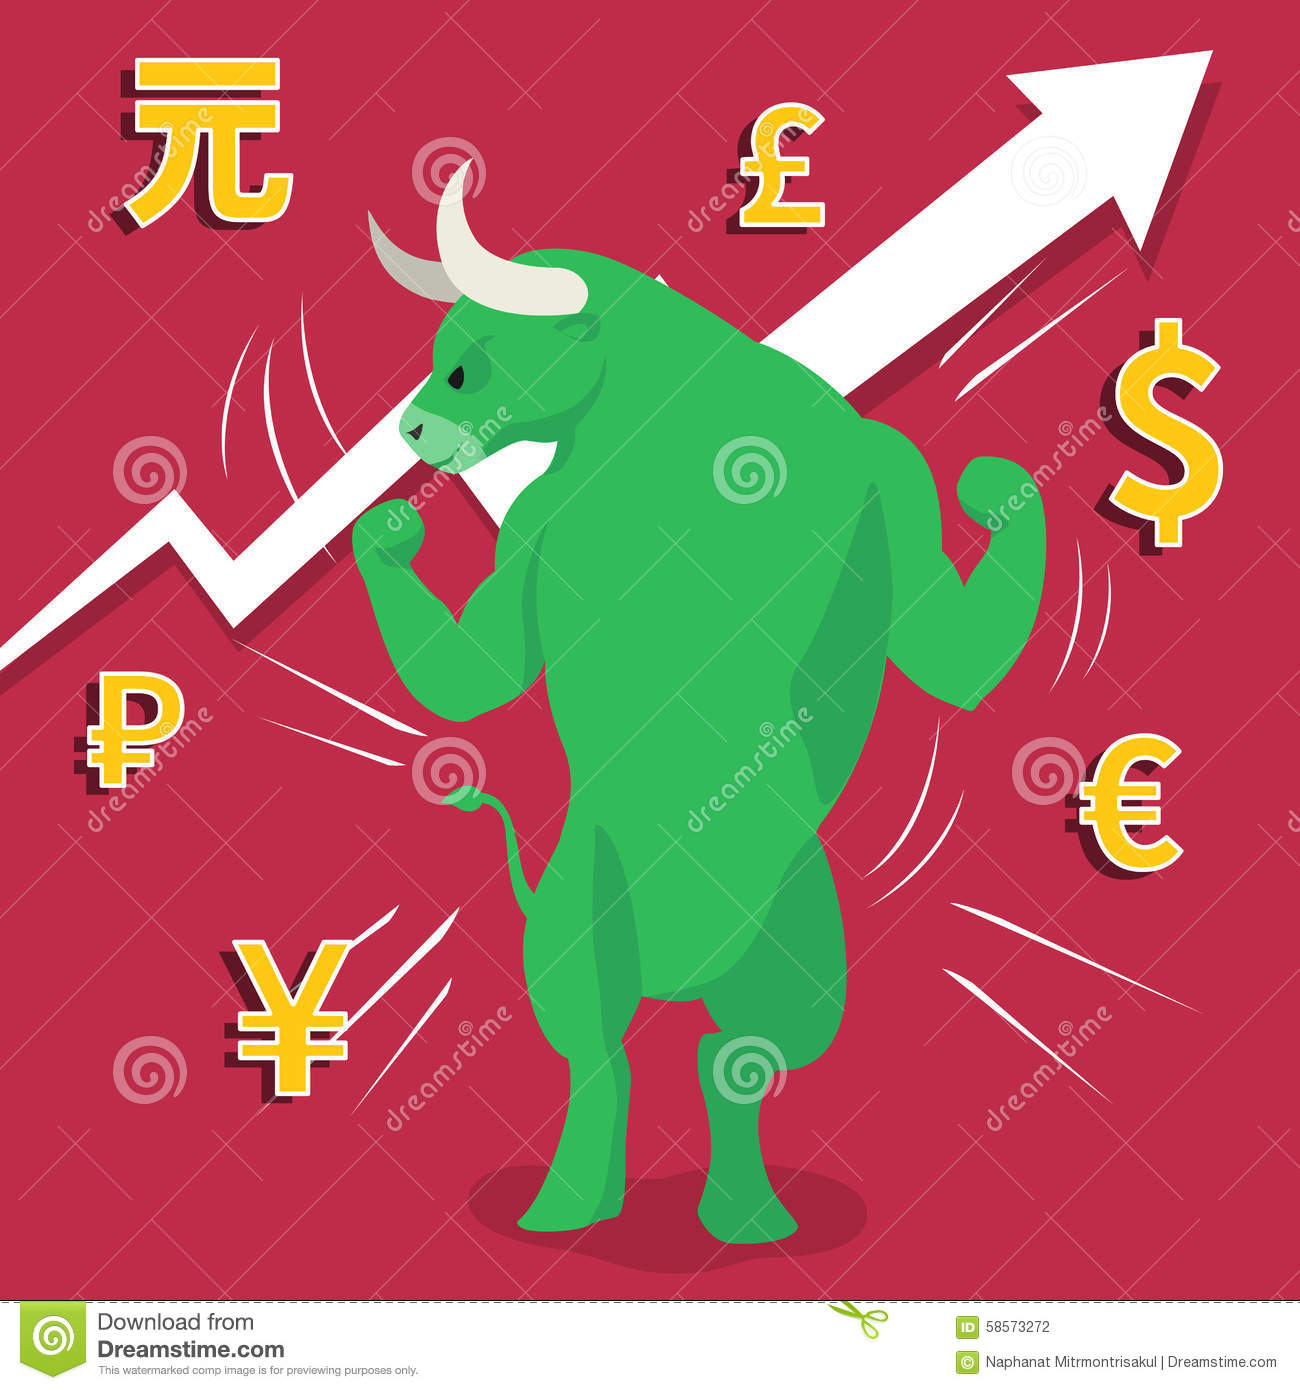 Green Bull Market Presents Uptrend Stock Market Concept Stock.